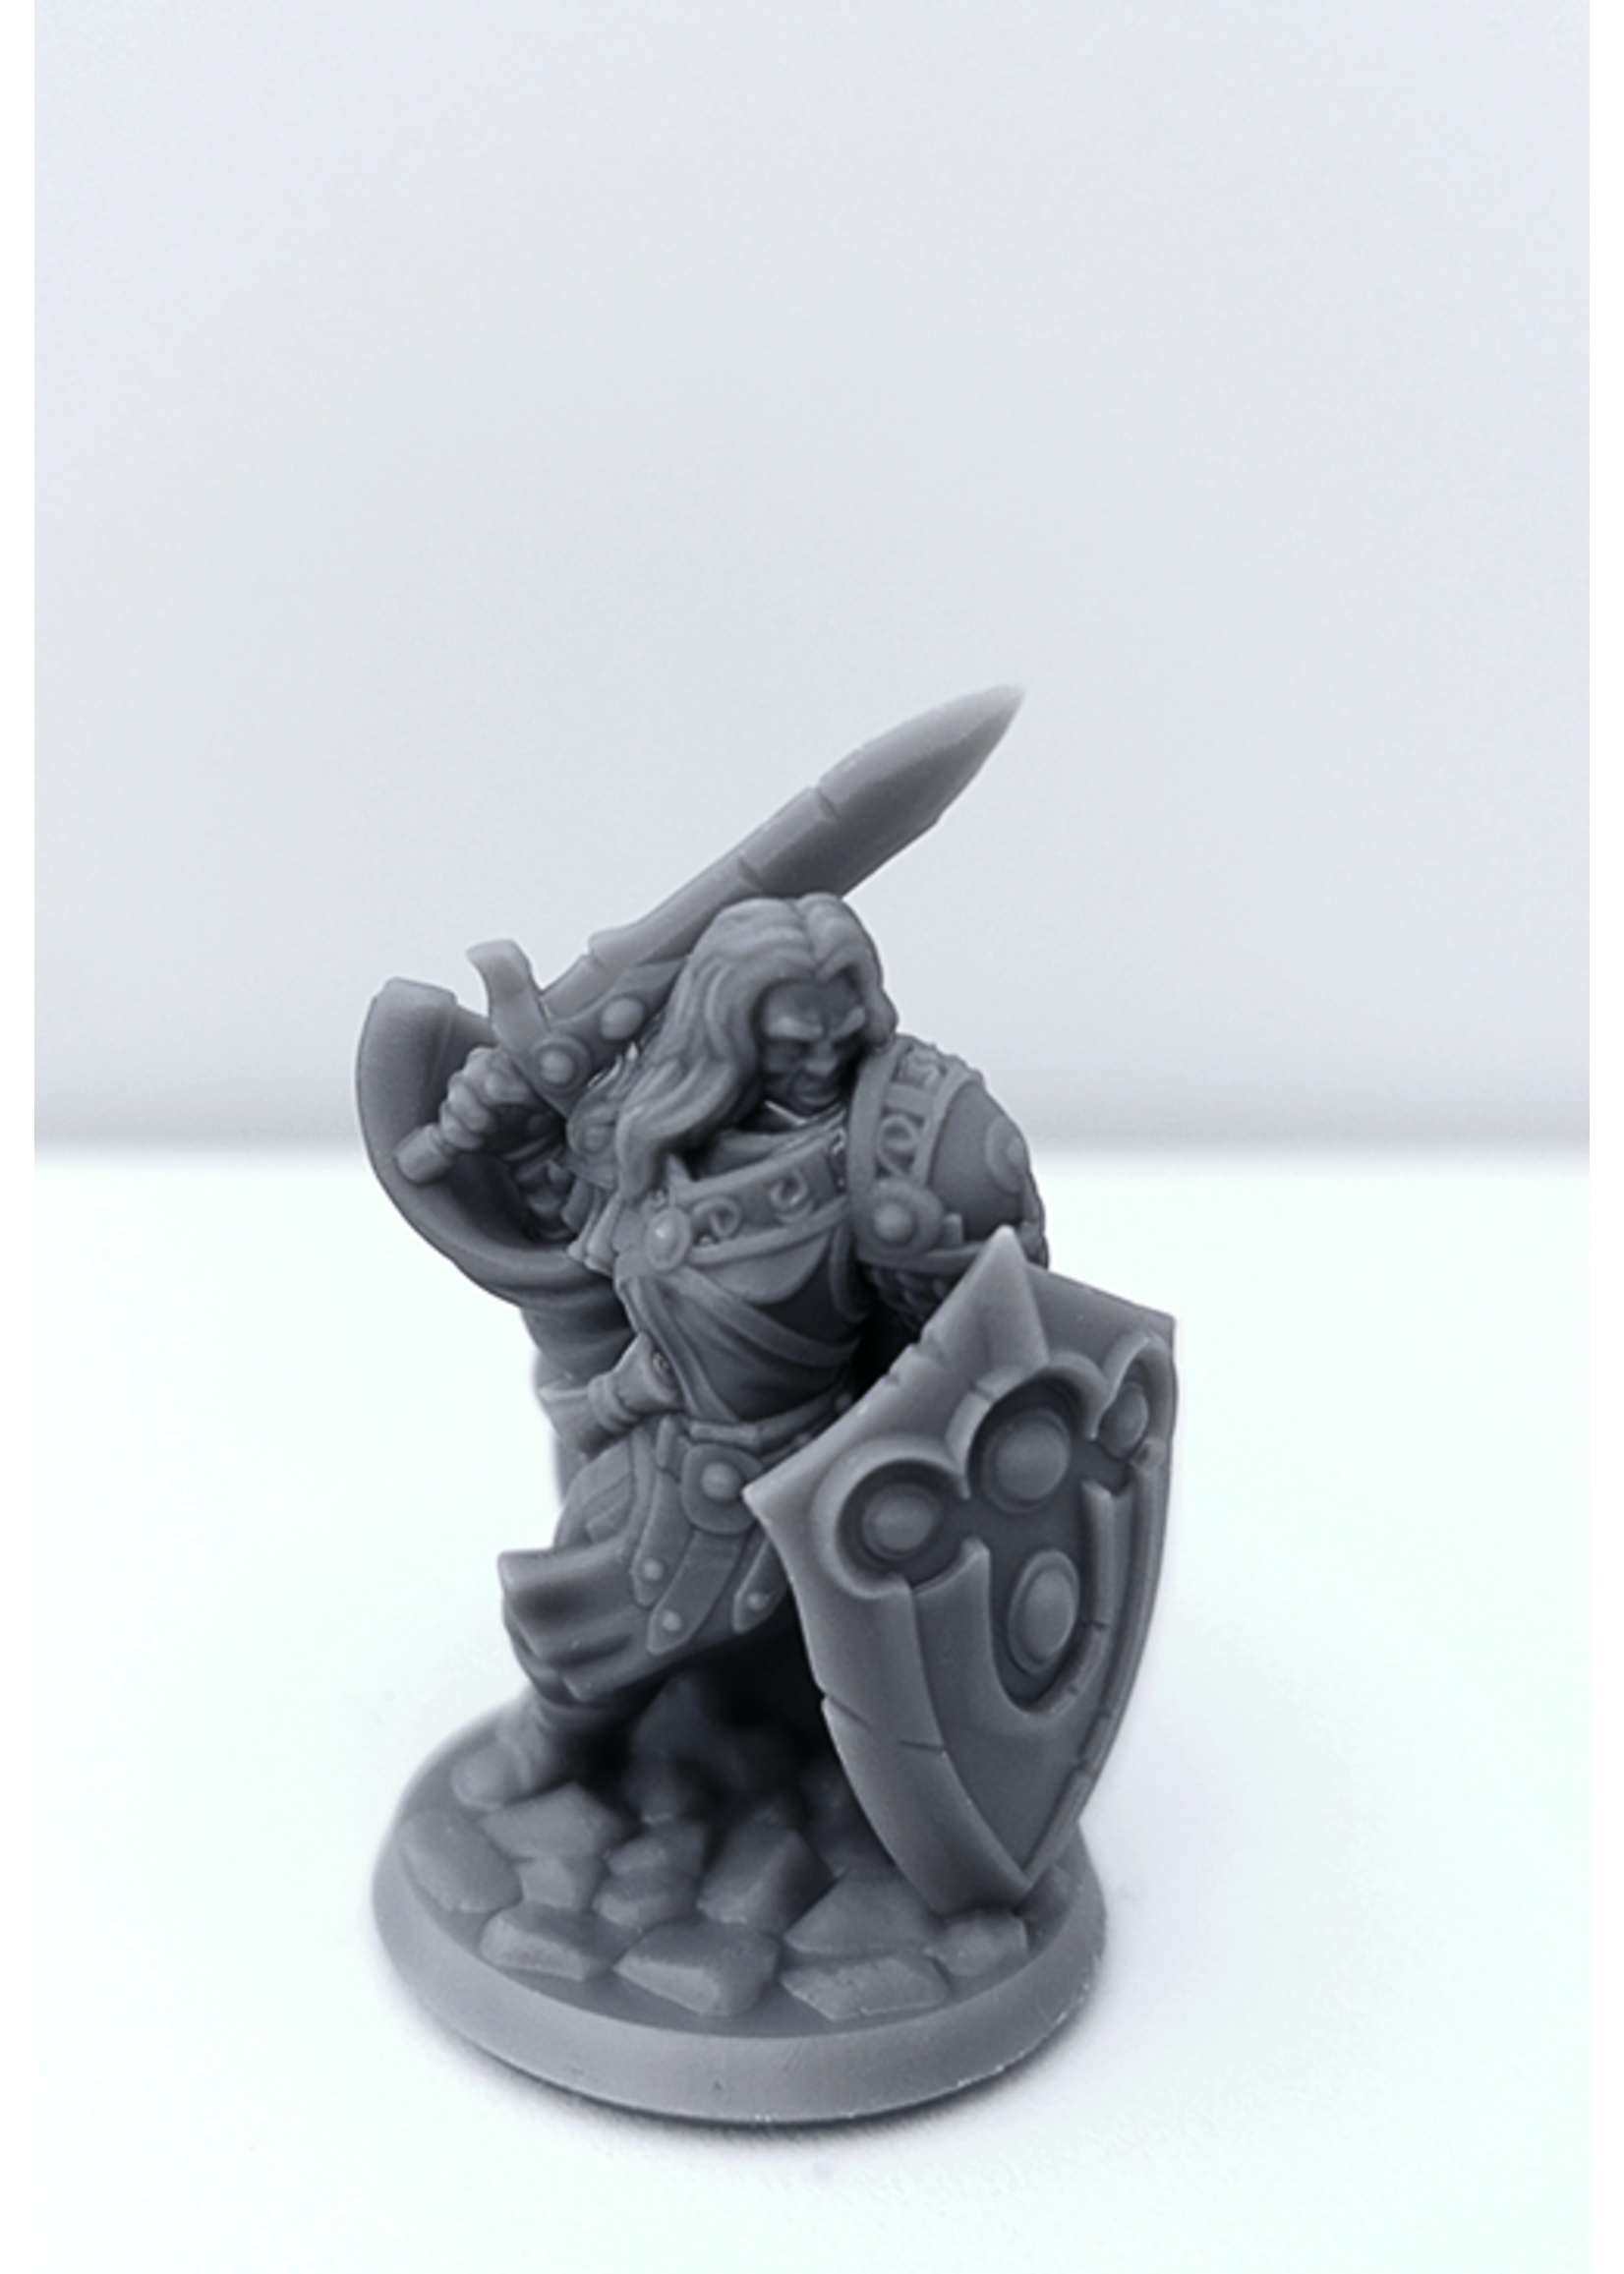 3D Printed Miniature - Paladin Male 01 - Dungeons & Dragons - Hero of the Realm KS